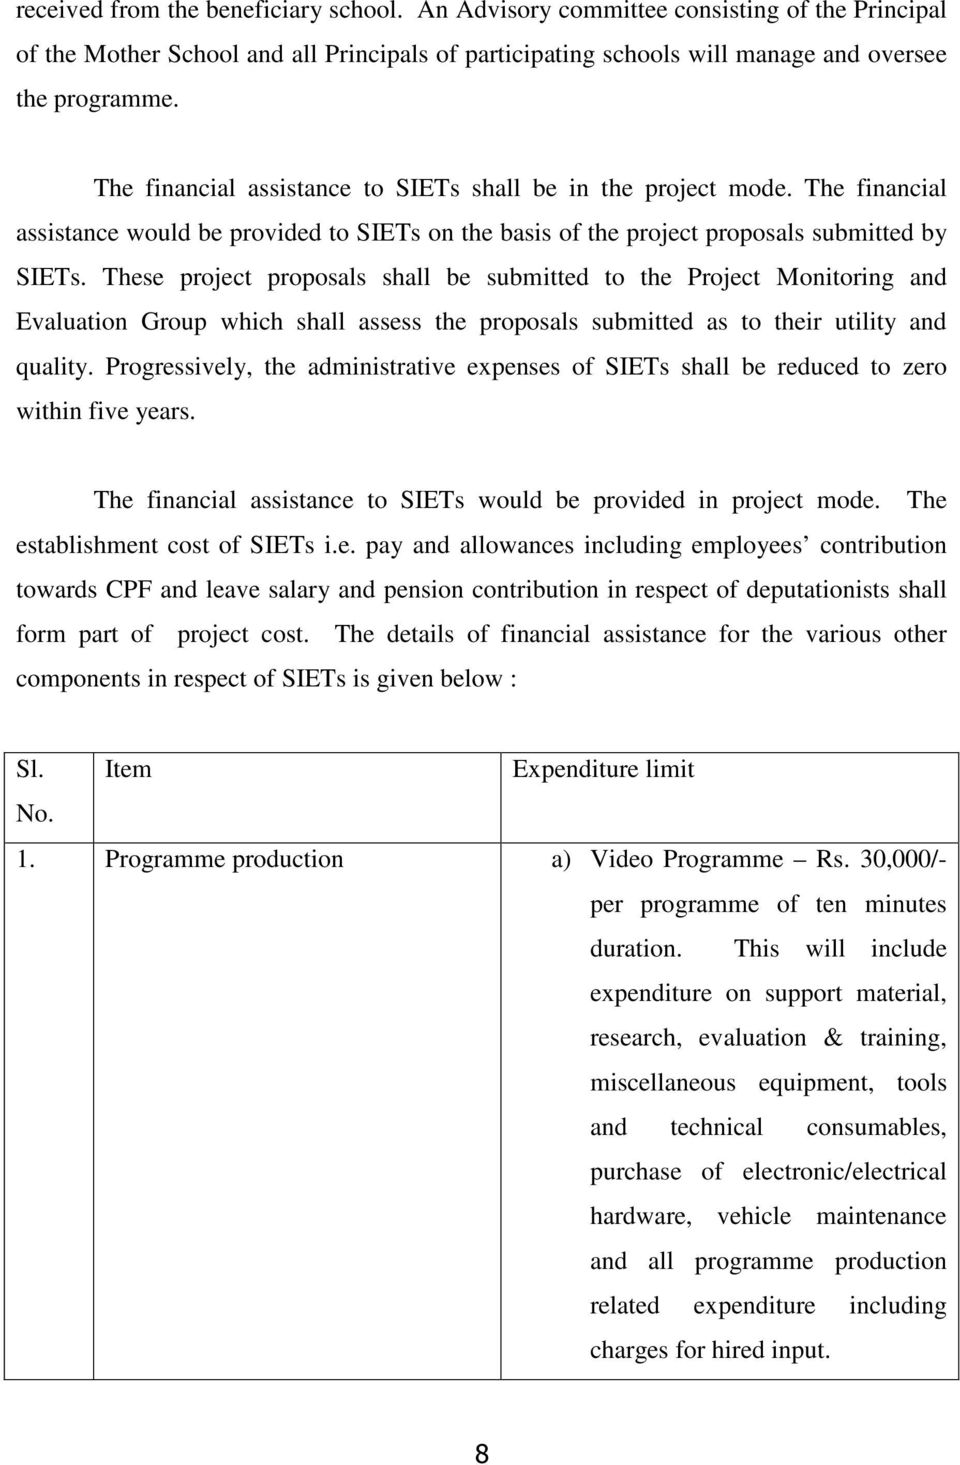 These project proposals shall be submitted to the Project Monitoring and Evaluation Group which shall assess the proposals submitted as to their utility and quality.